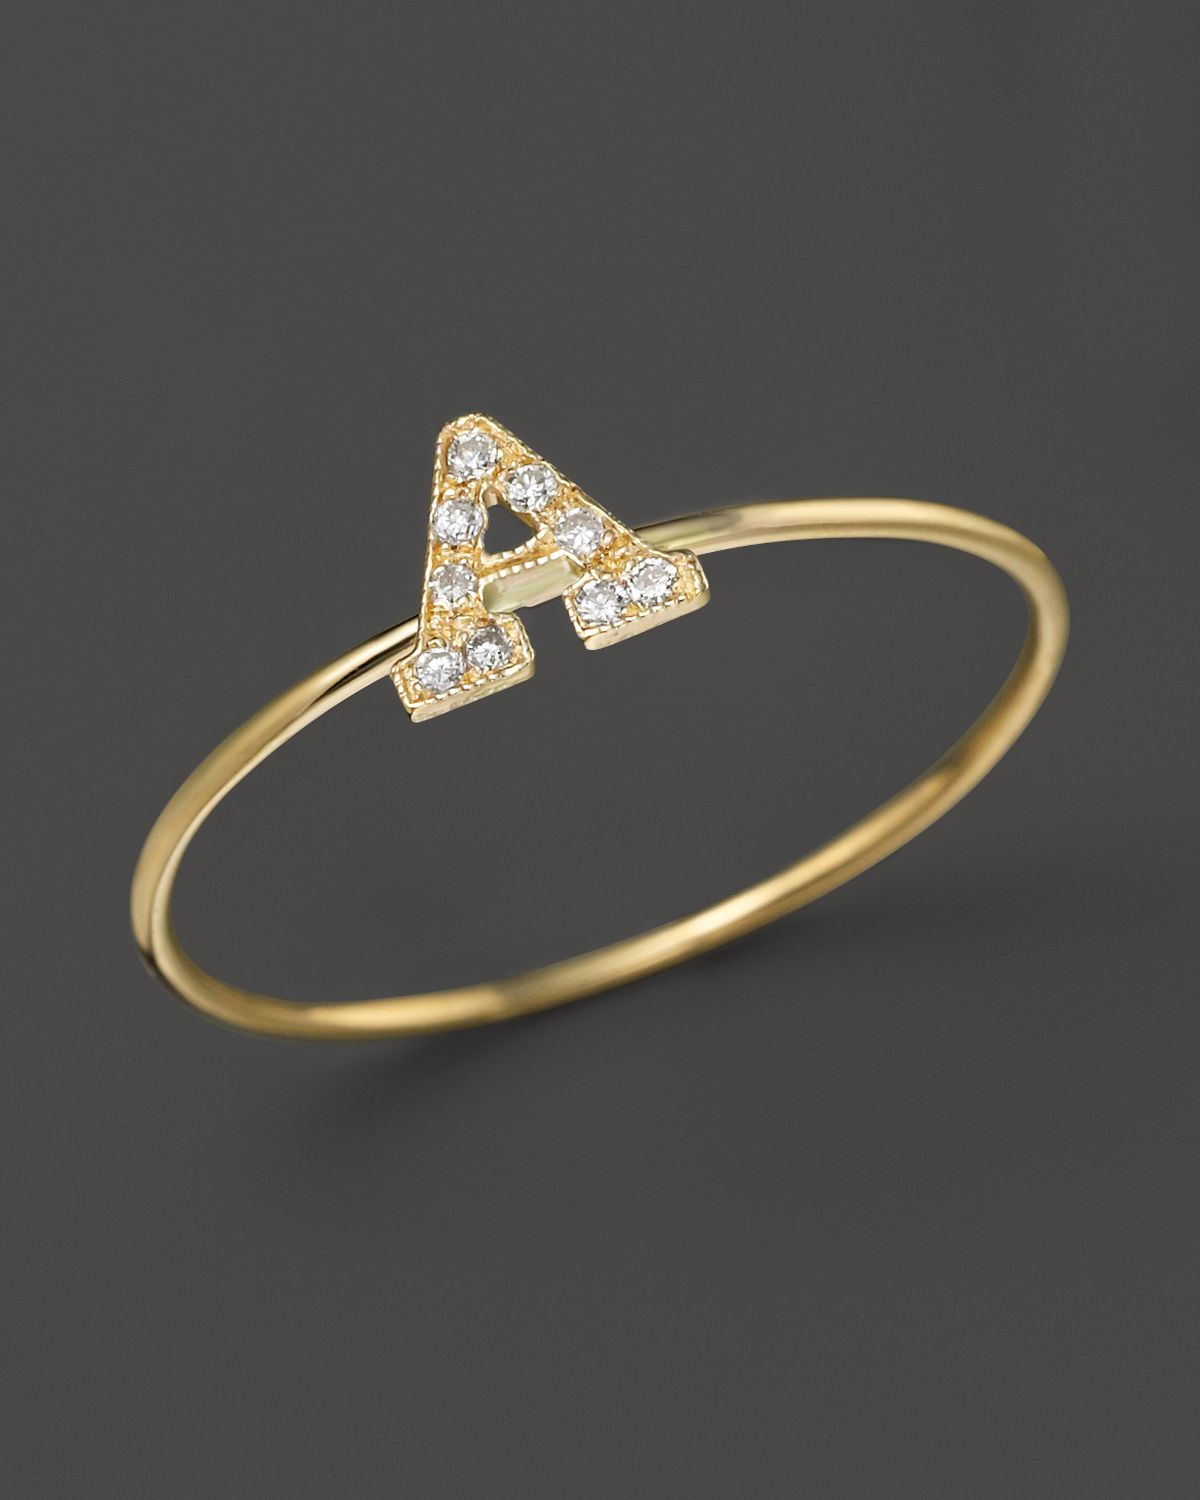 Zoë Chicco Pave Diamond Gold Initial Ring LuWqf3K